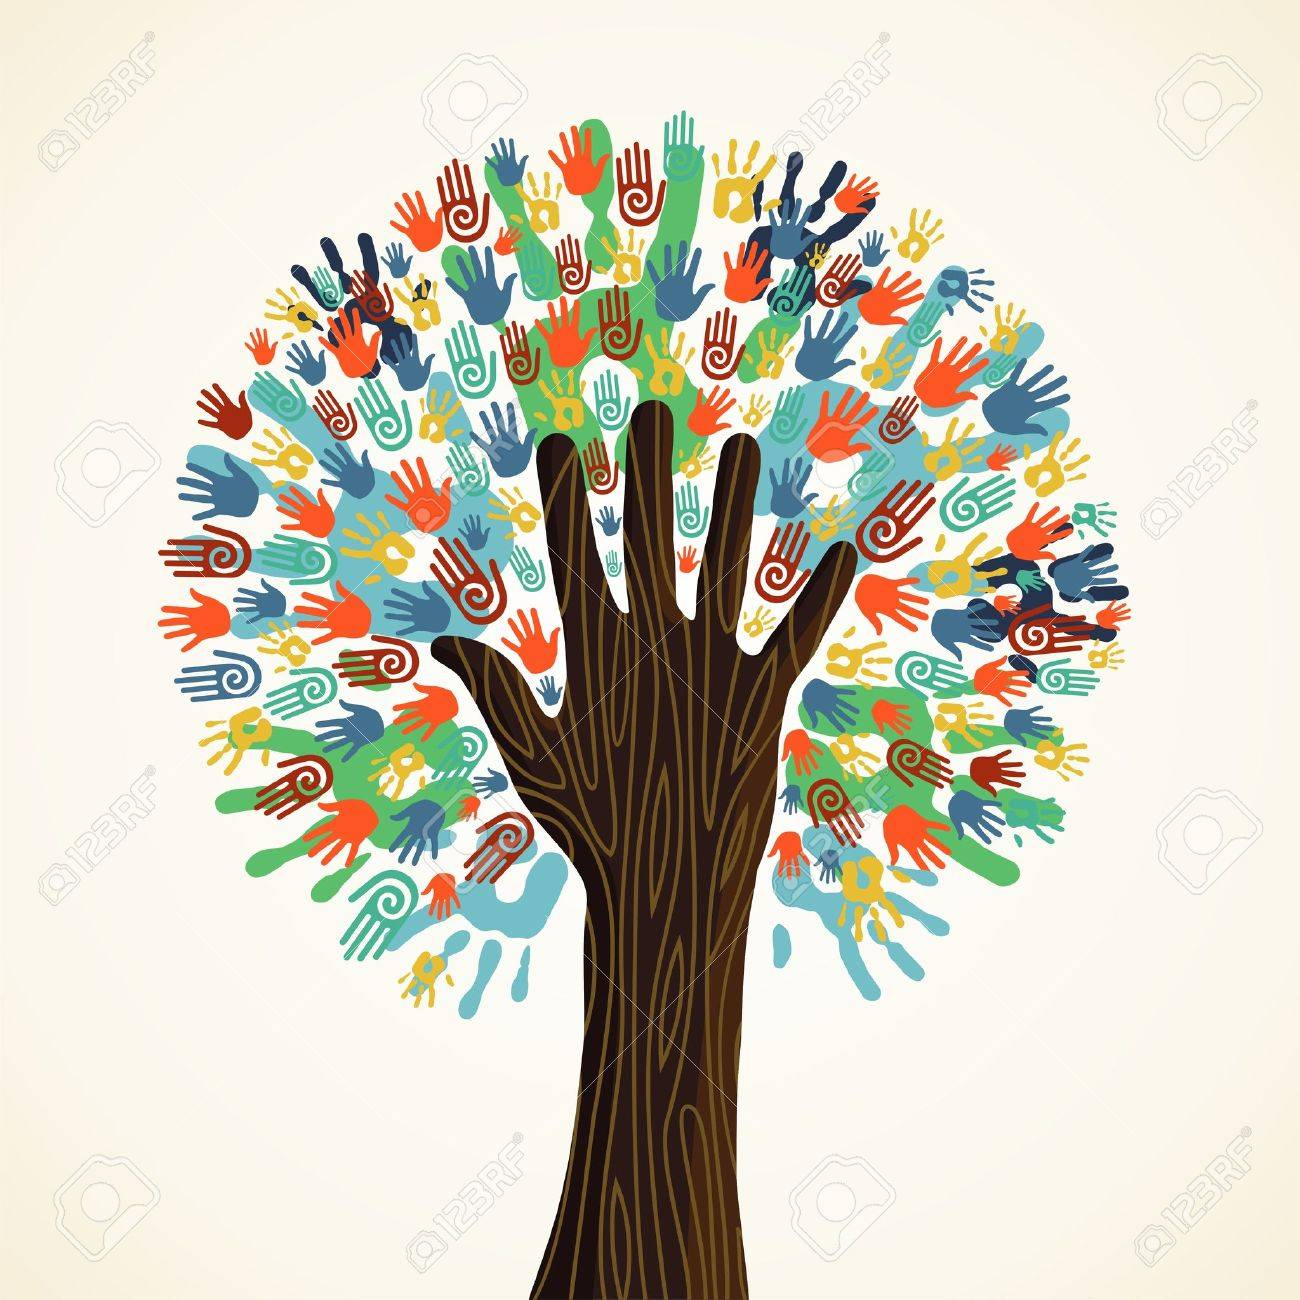 Isolated diversity tree hands illustration. Vector file layered for easy manipulation and custom coloring. - 14777574